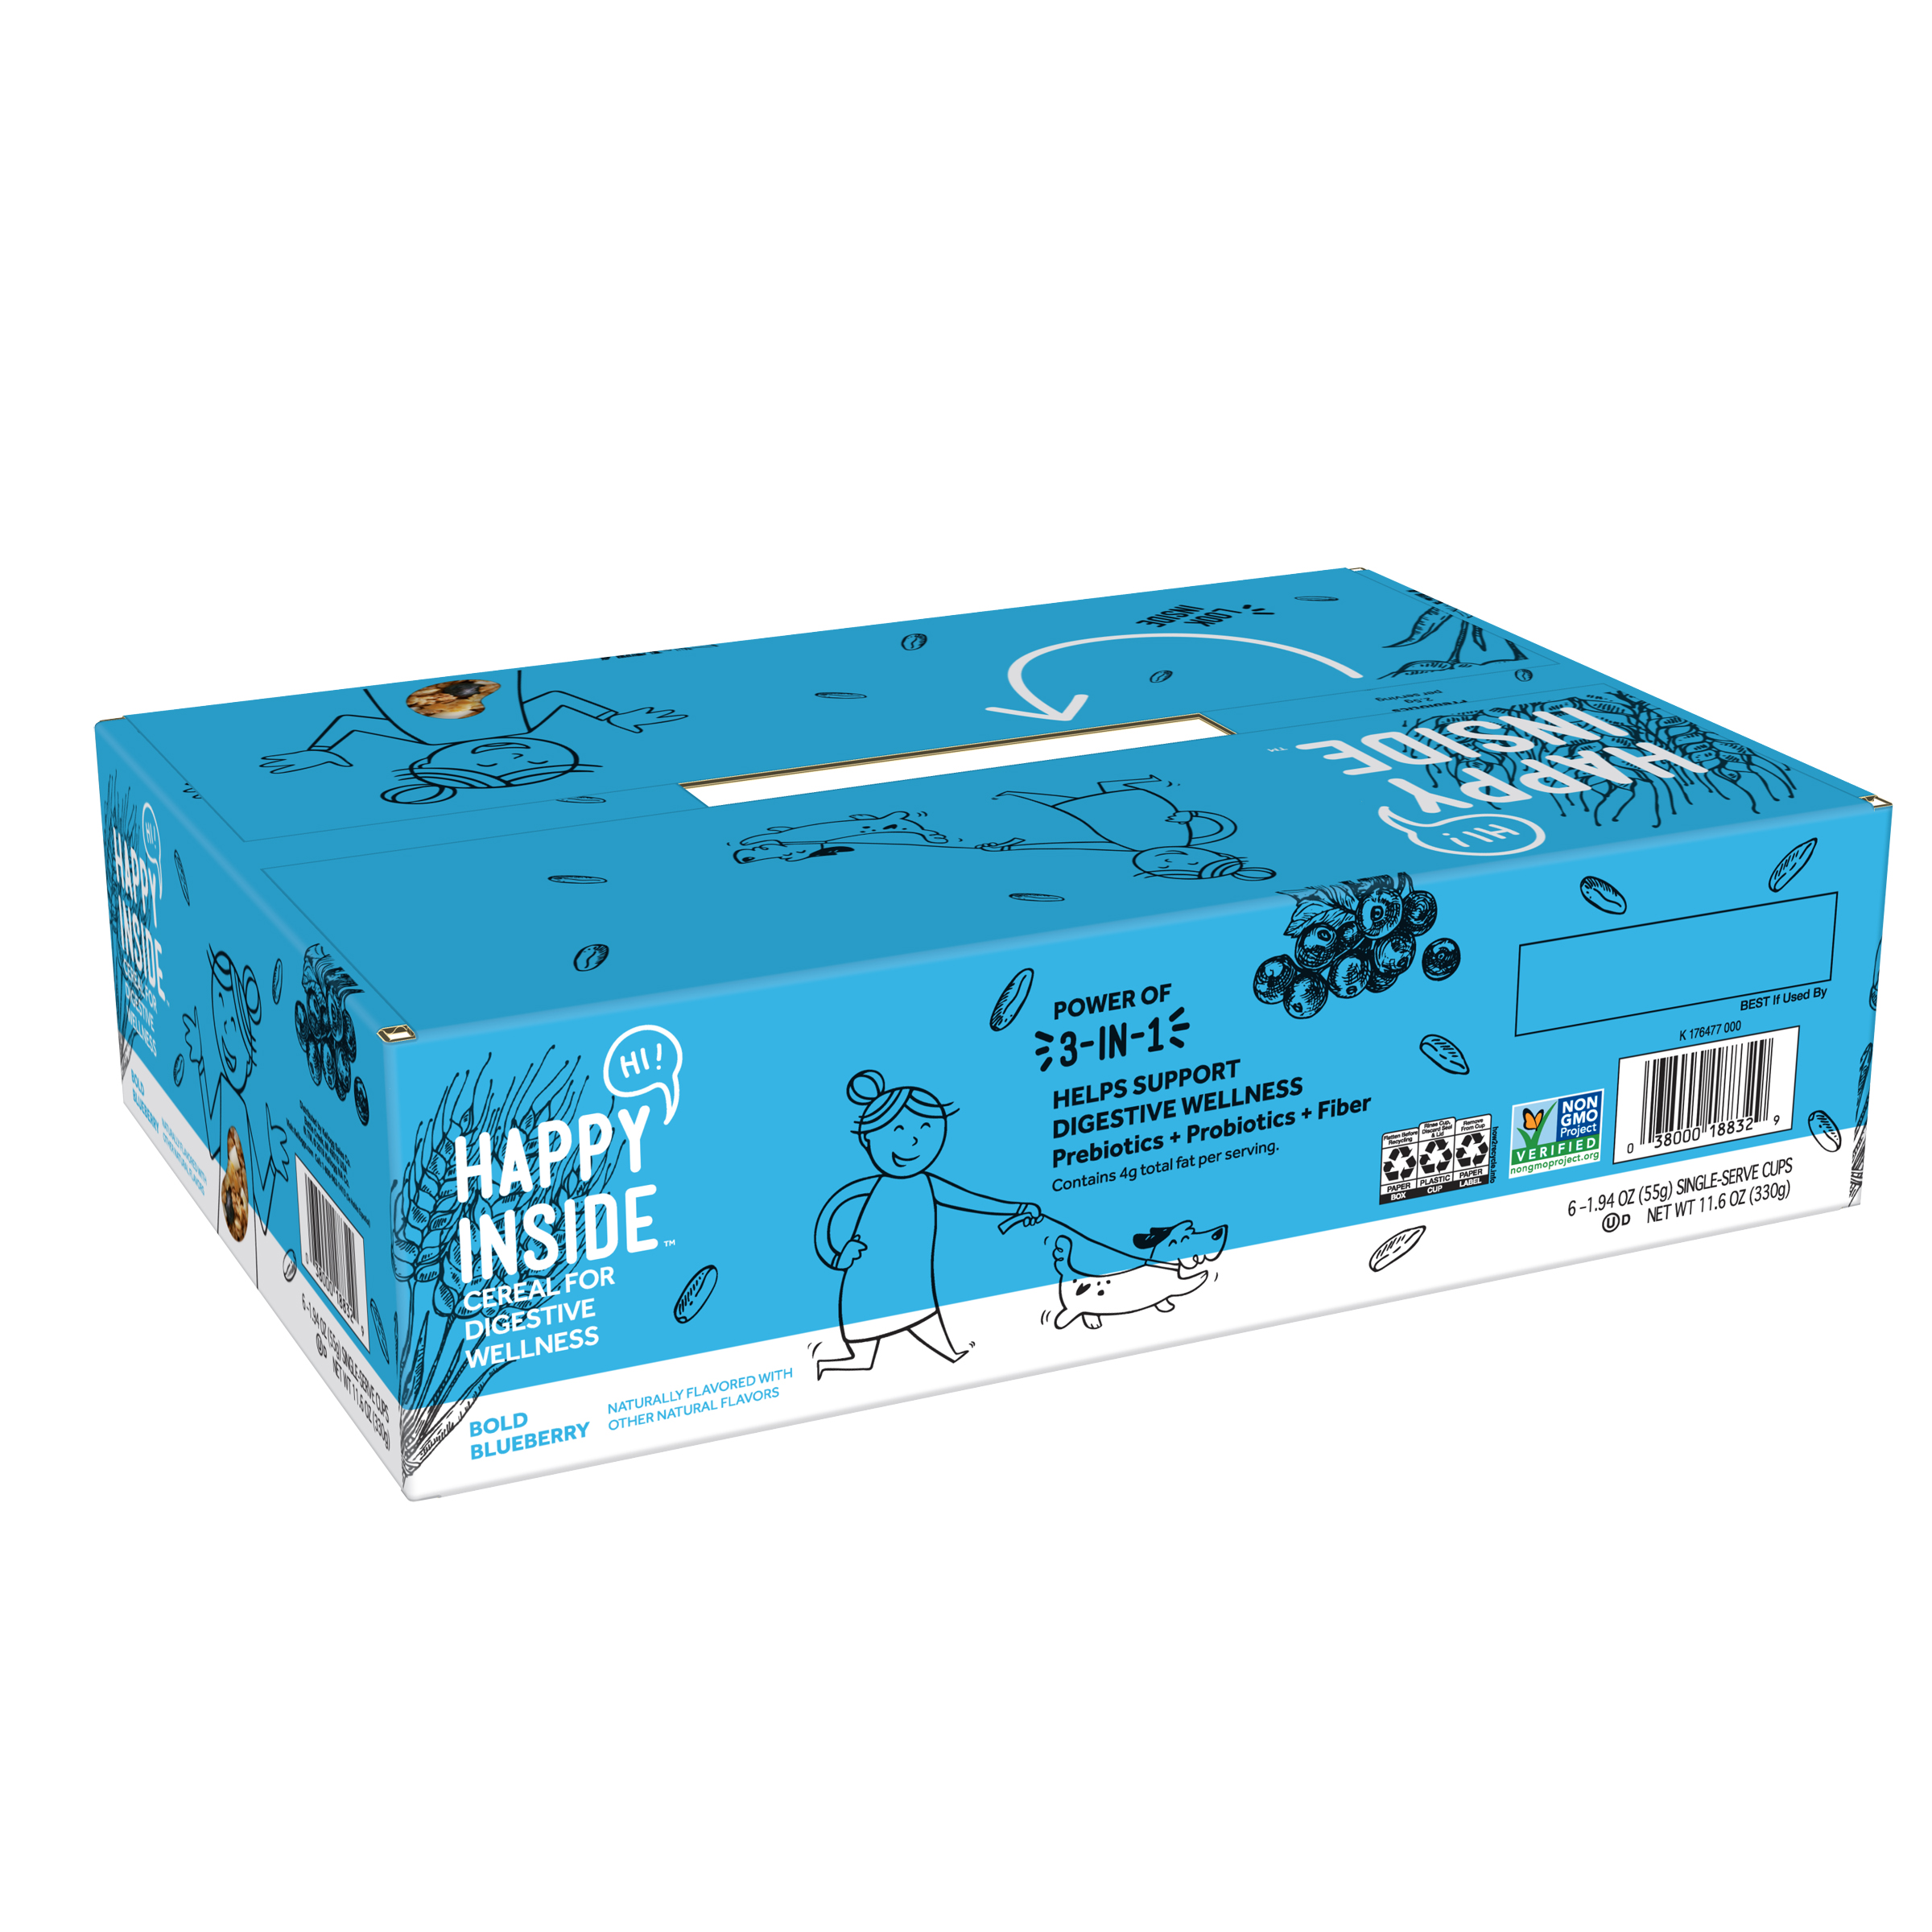 HI Happy Inside Bold Blueberry Breakfast Cereal for Digestive